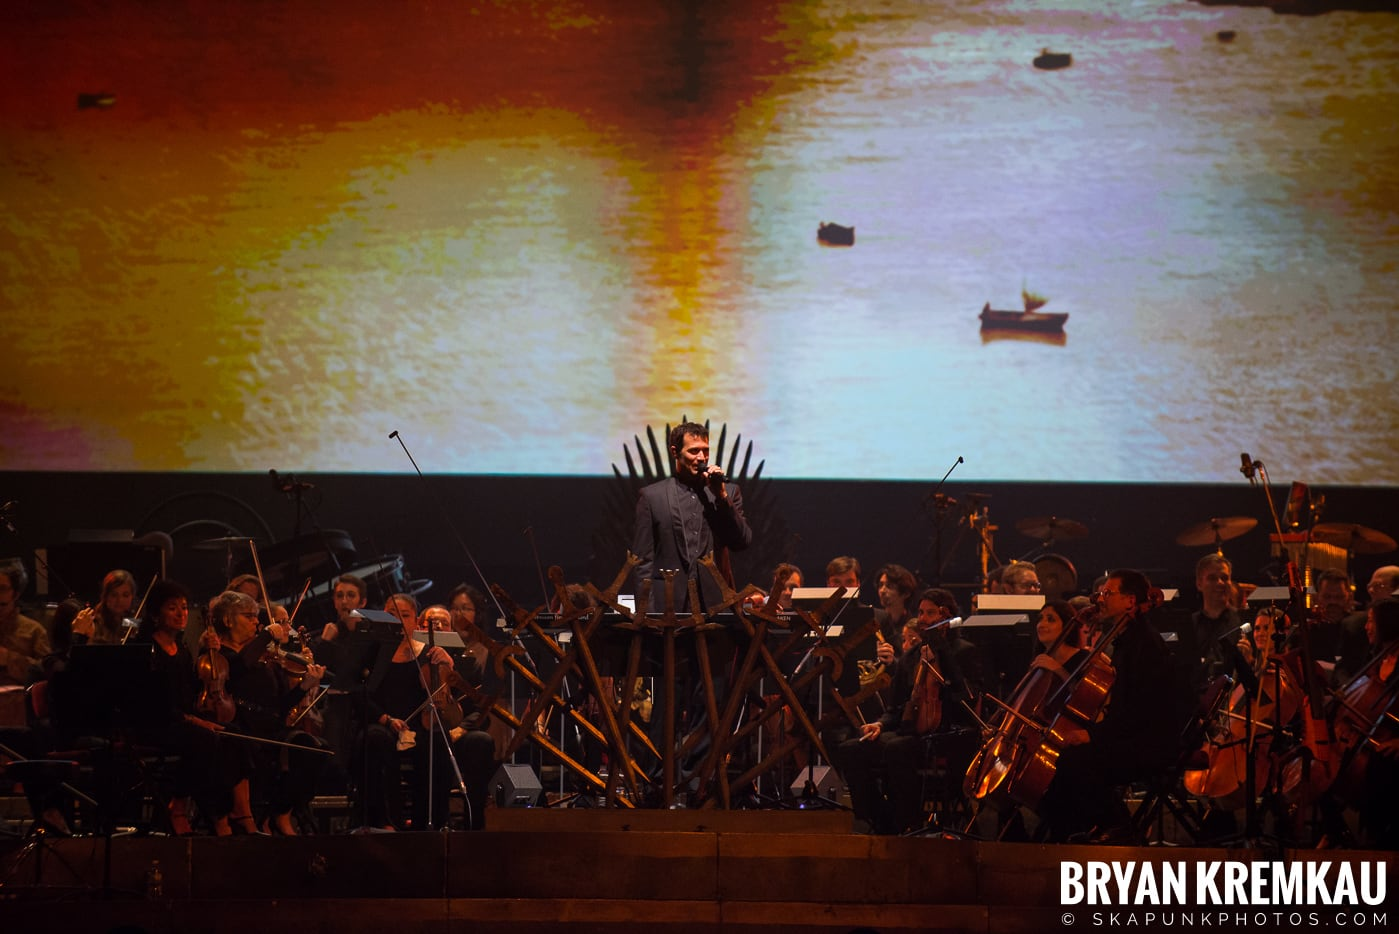 Game of Thrones Live Experience @ Prudential Center, Newark, NJ - 9.26.18 (28)